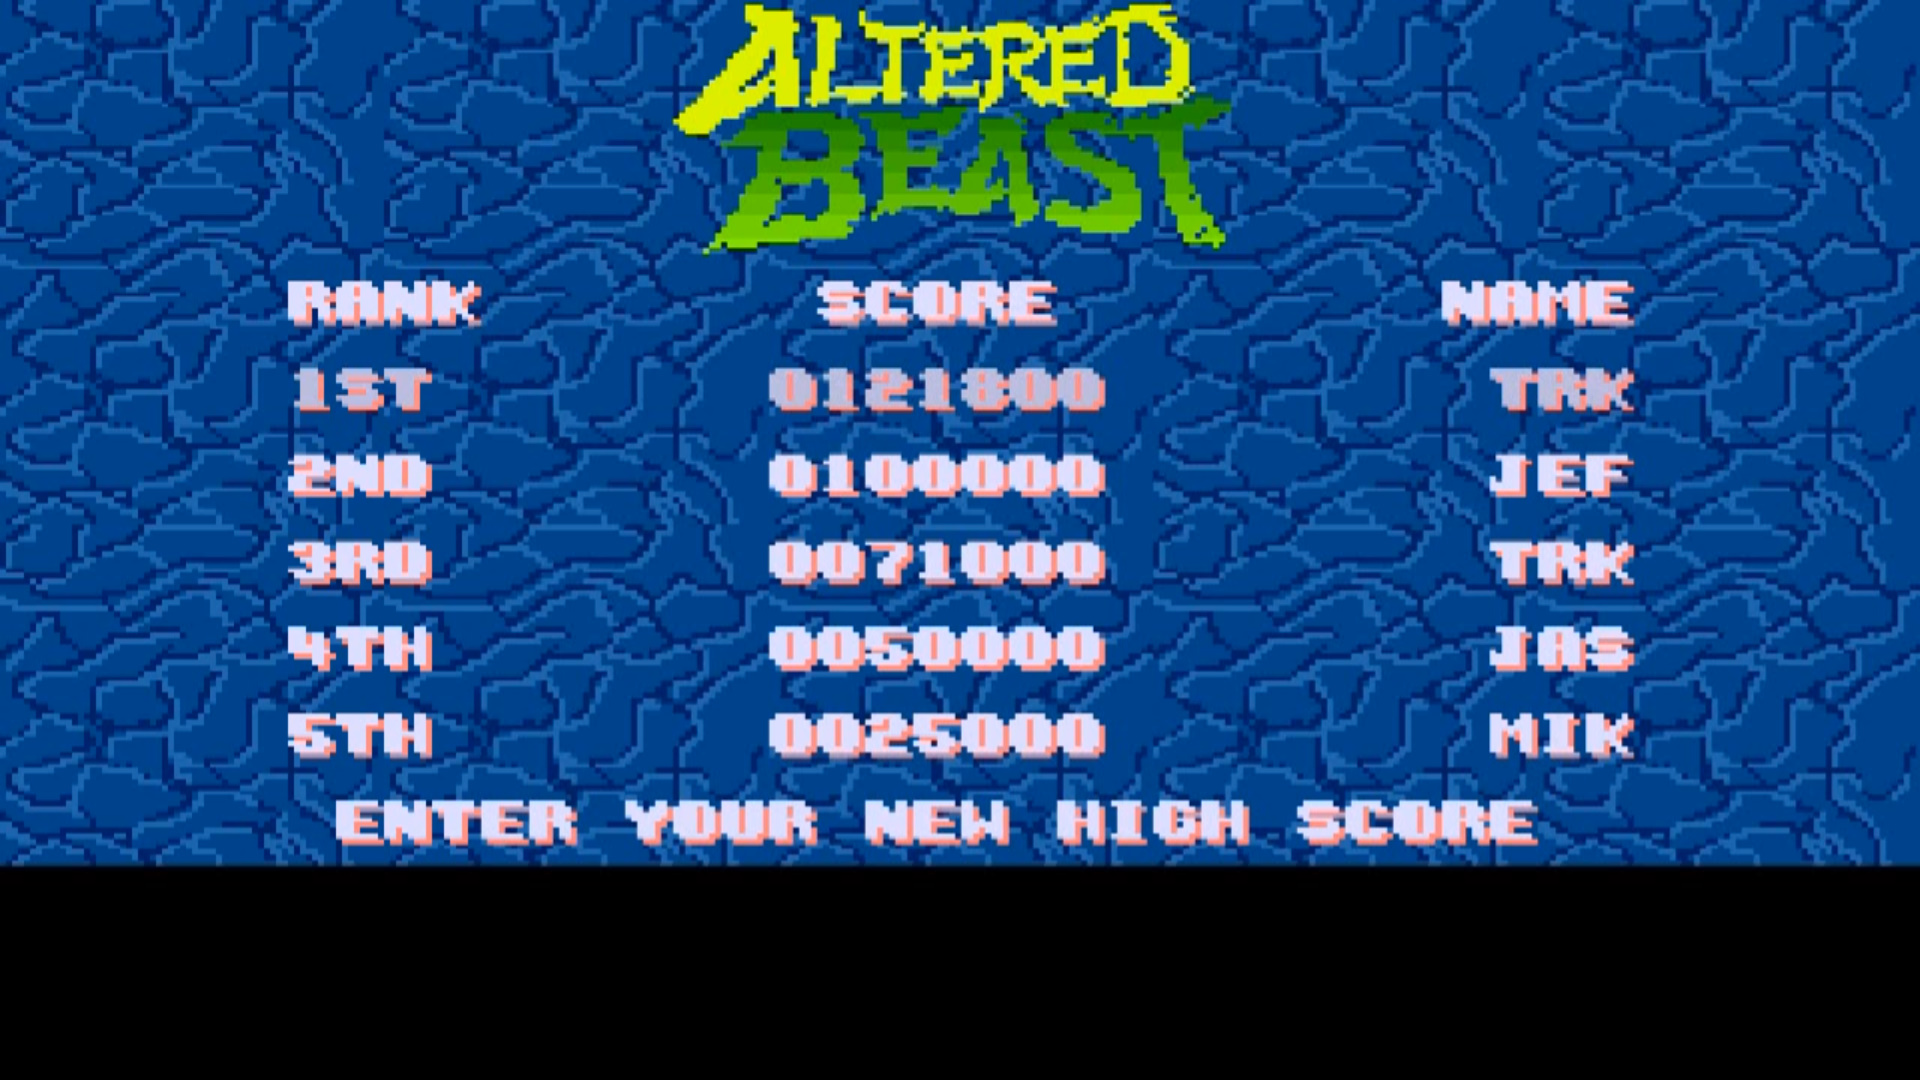 TheTrickster: Altered Beast (Amiga Emulated) 121,800 points on 2015-07-24 04:53:08